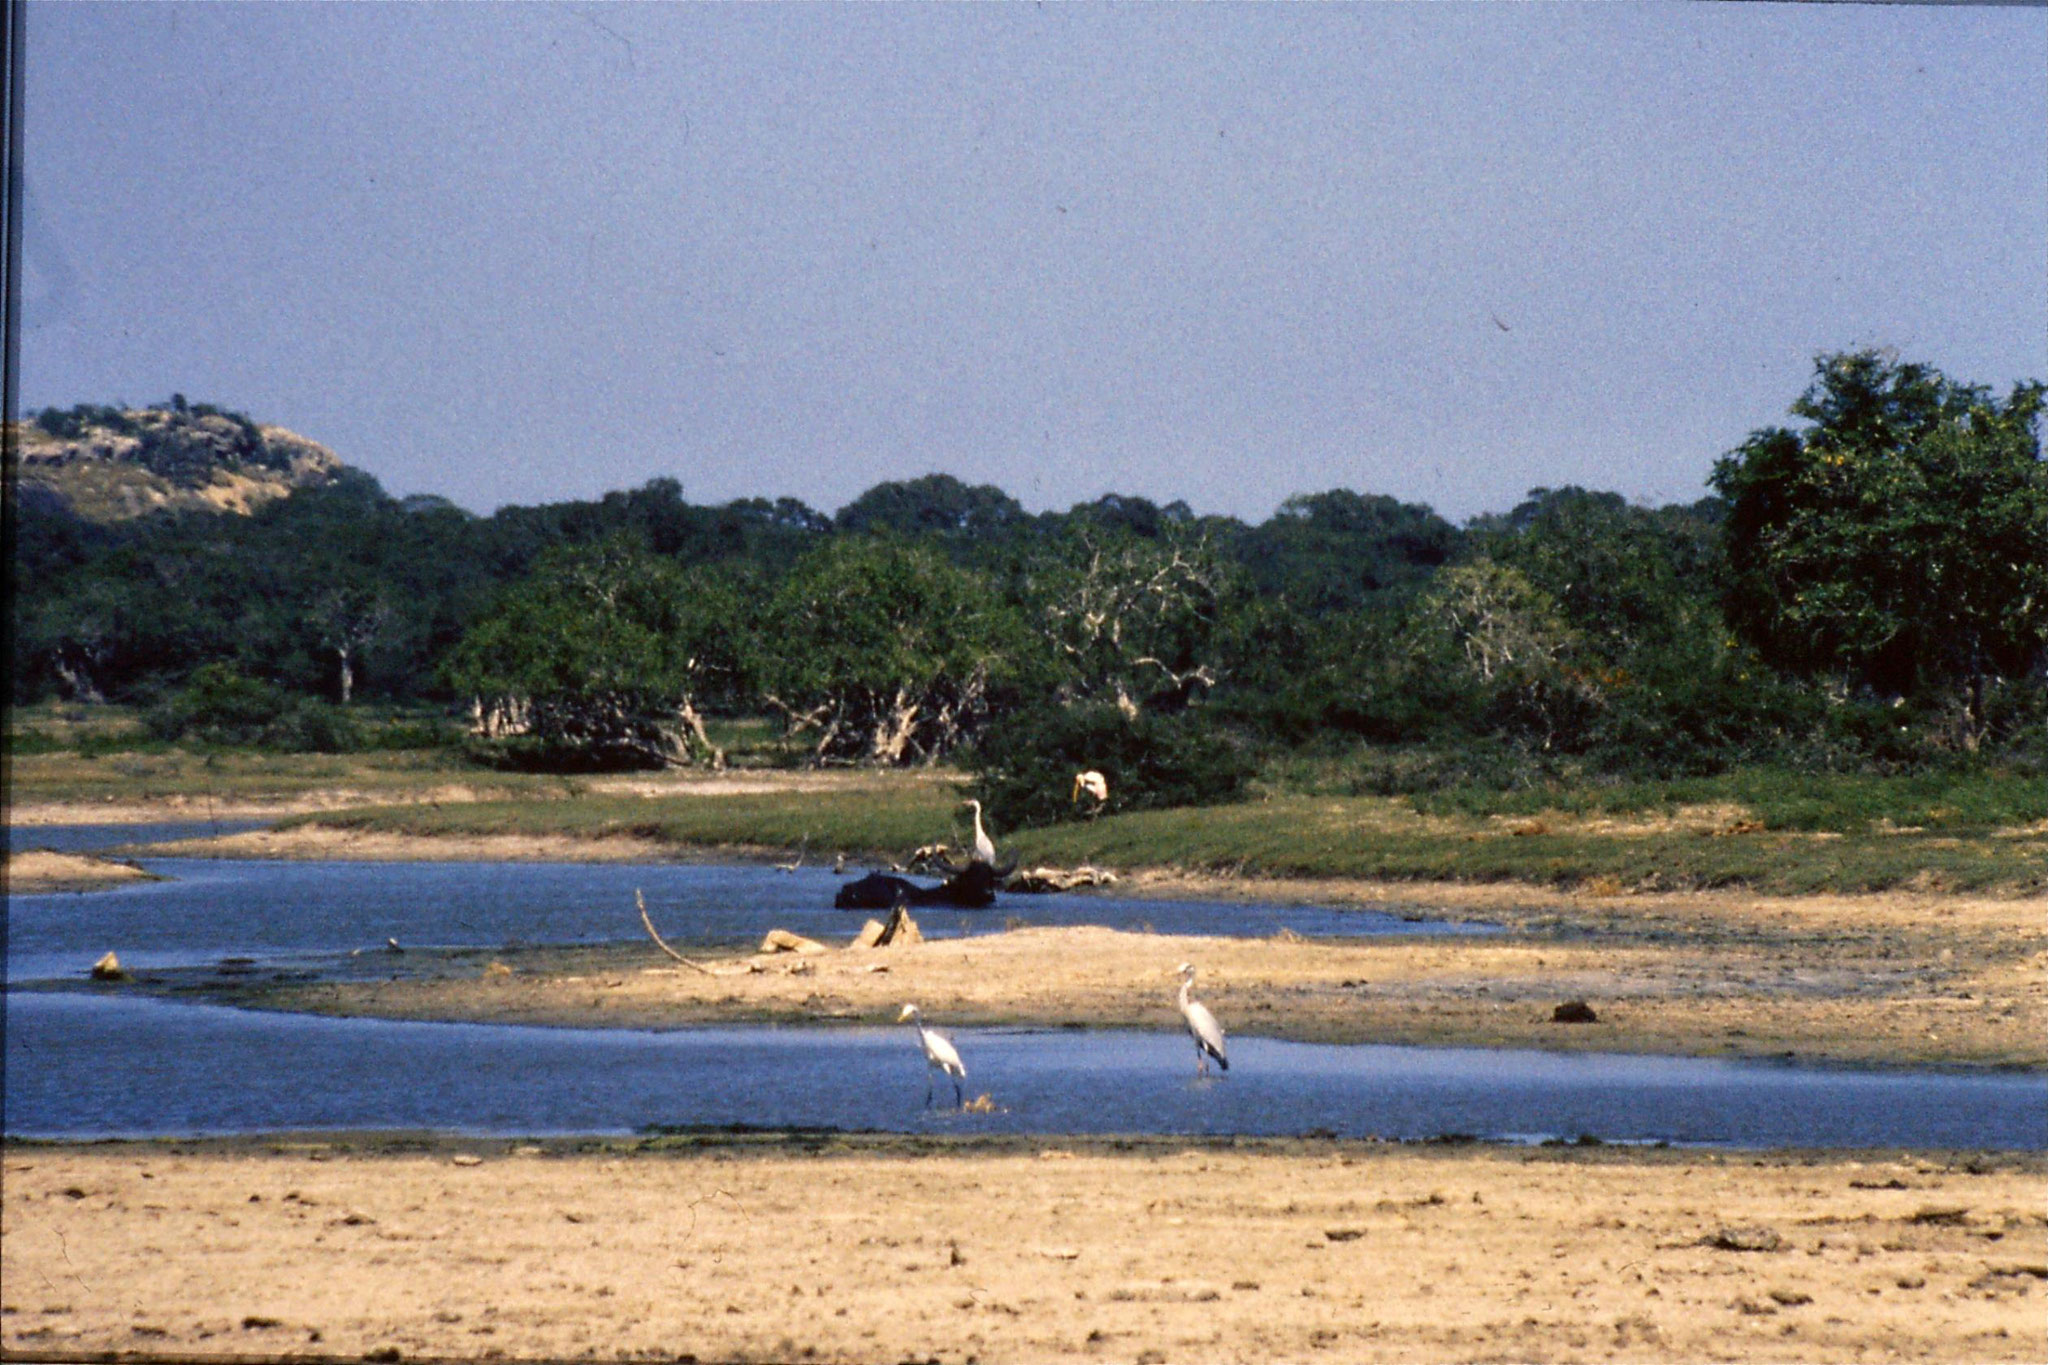 27/1/1989: 25: Yala National Park